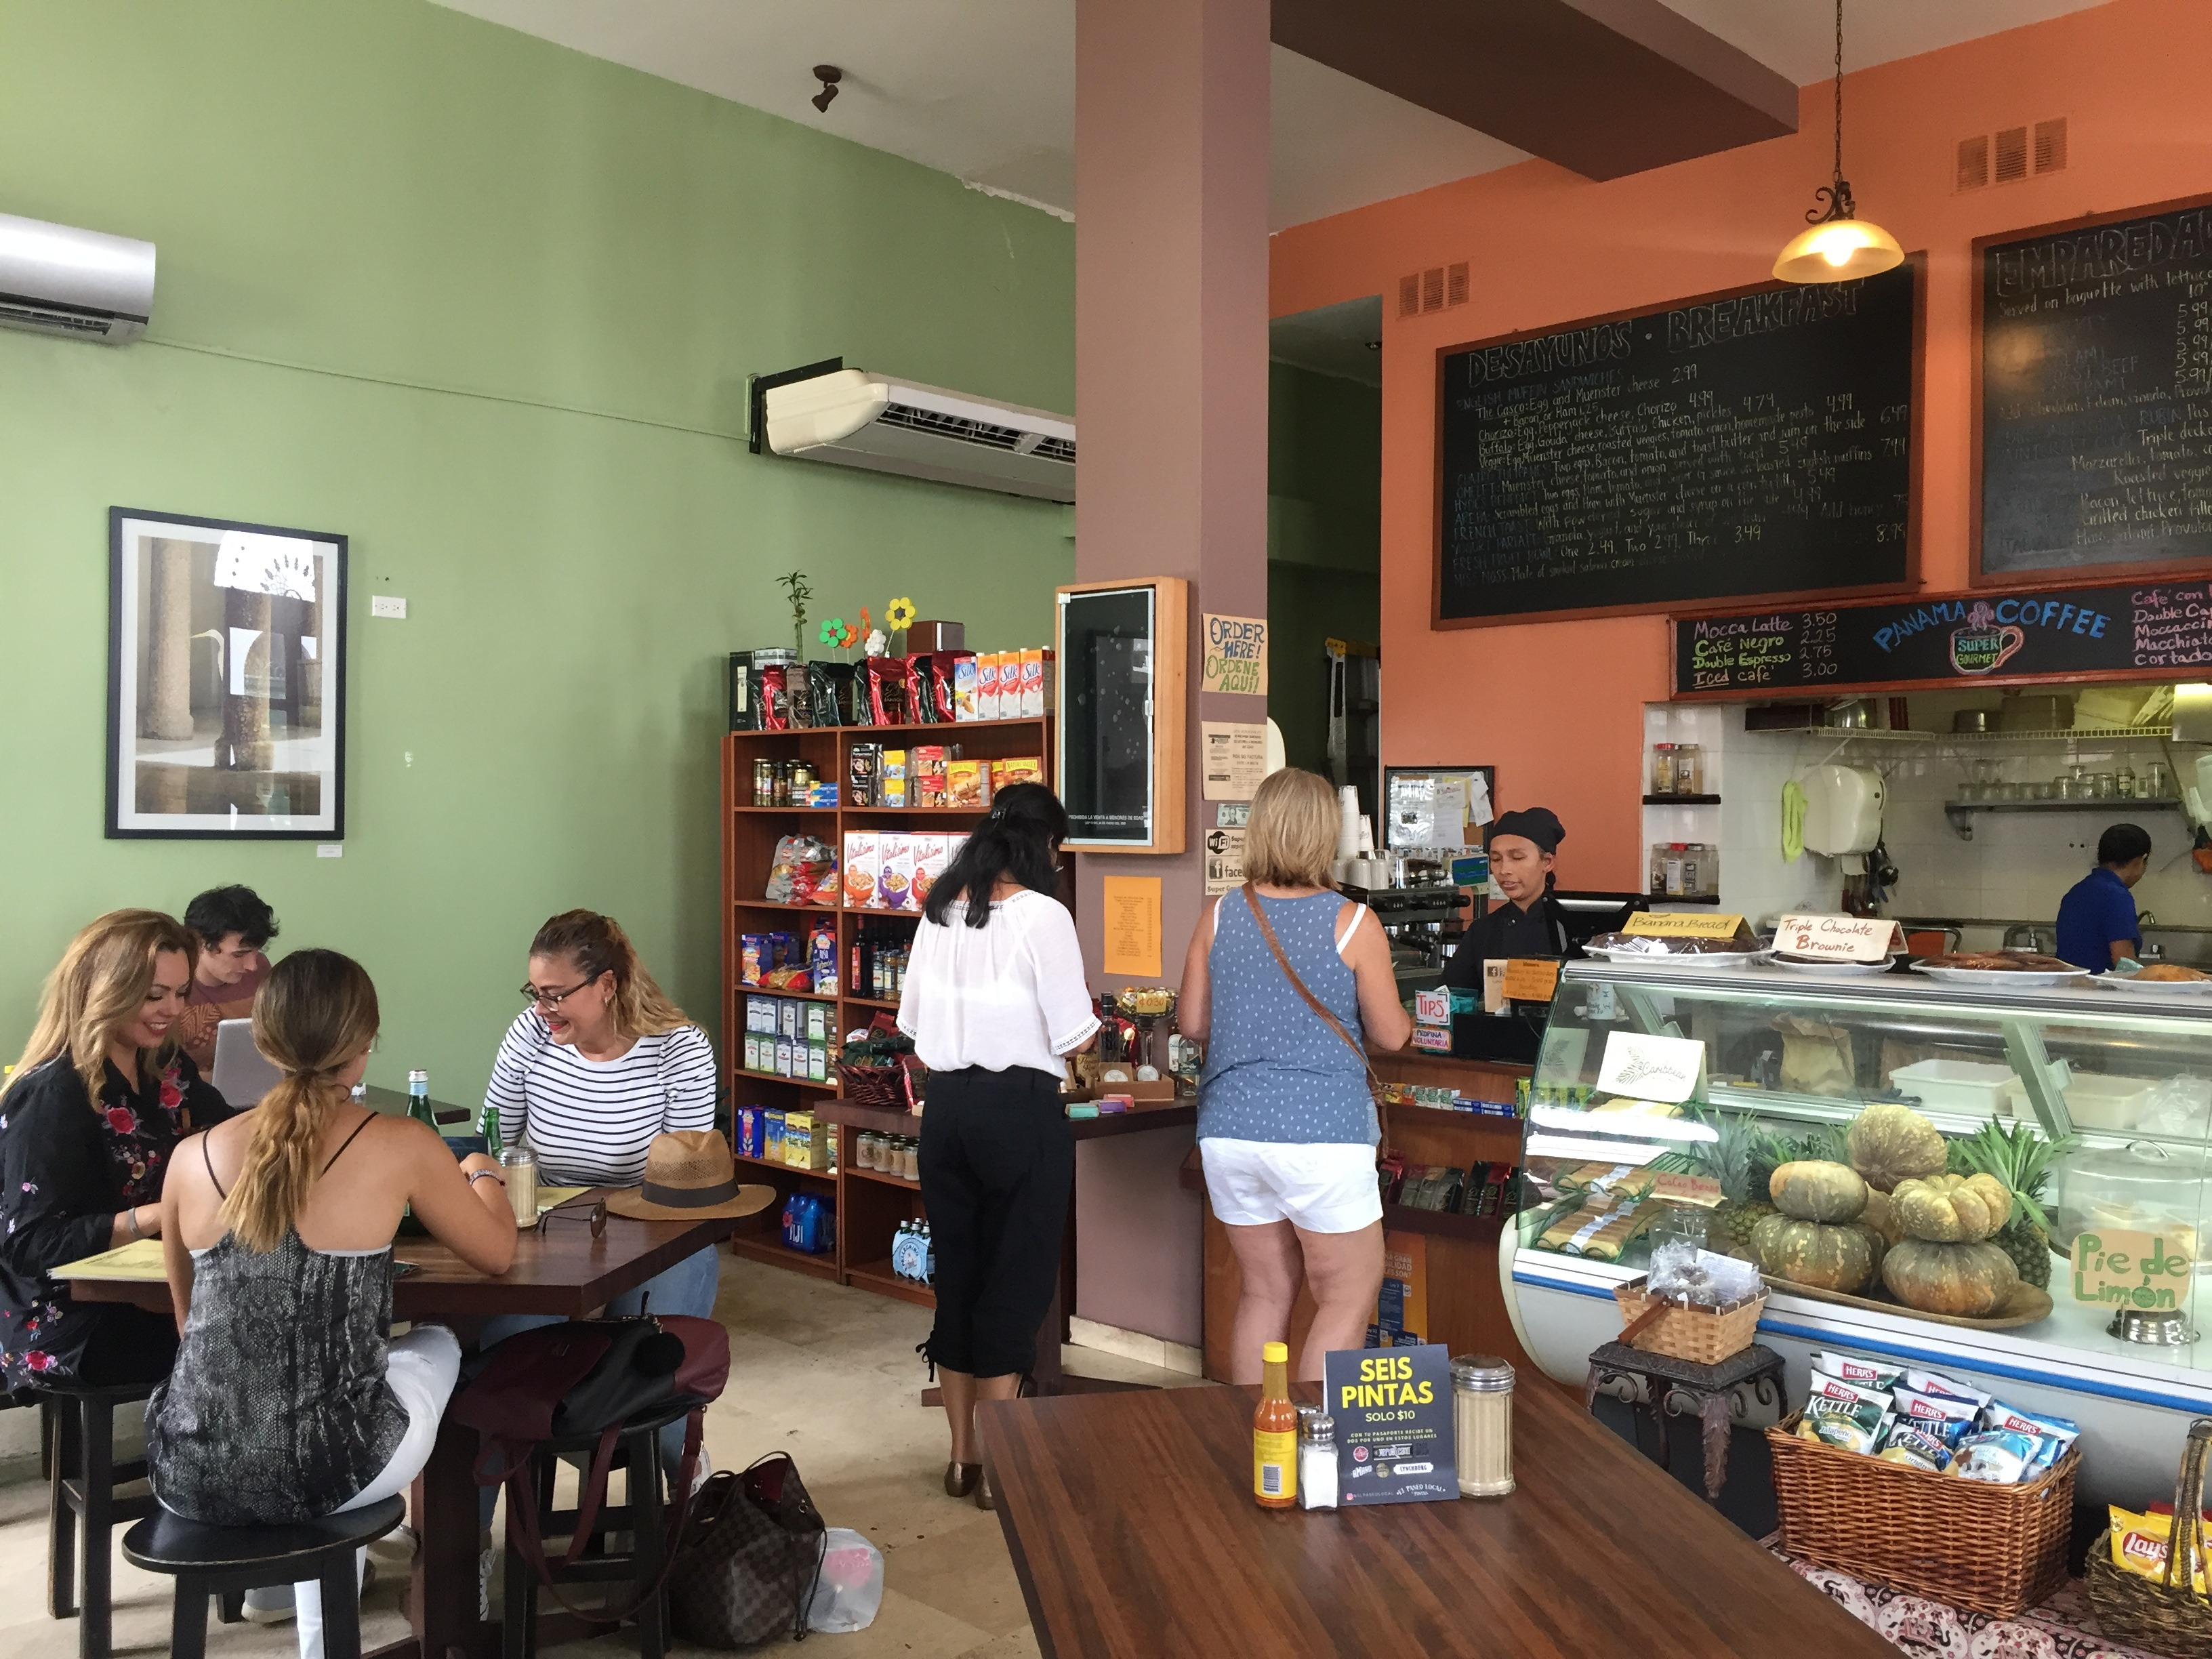 Super Gourmet - A great place to visit when moving to Panama City - Rosie Bell- The Beach Bell - 1 Work Remotely 1 Super Gourmet